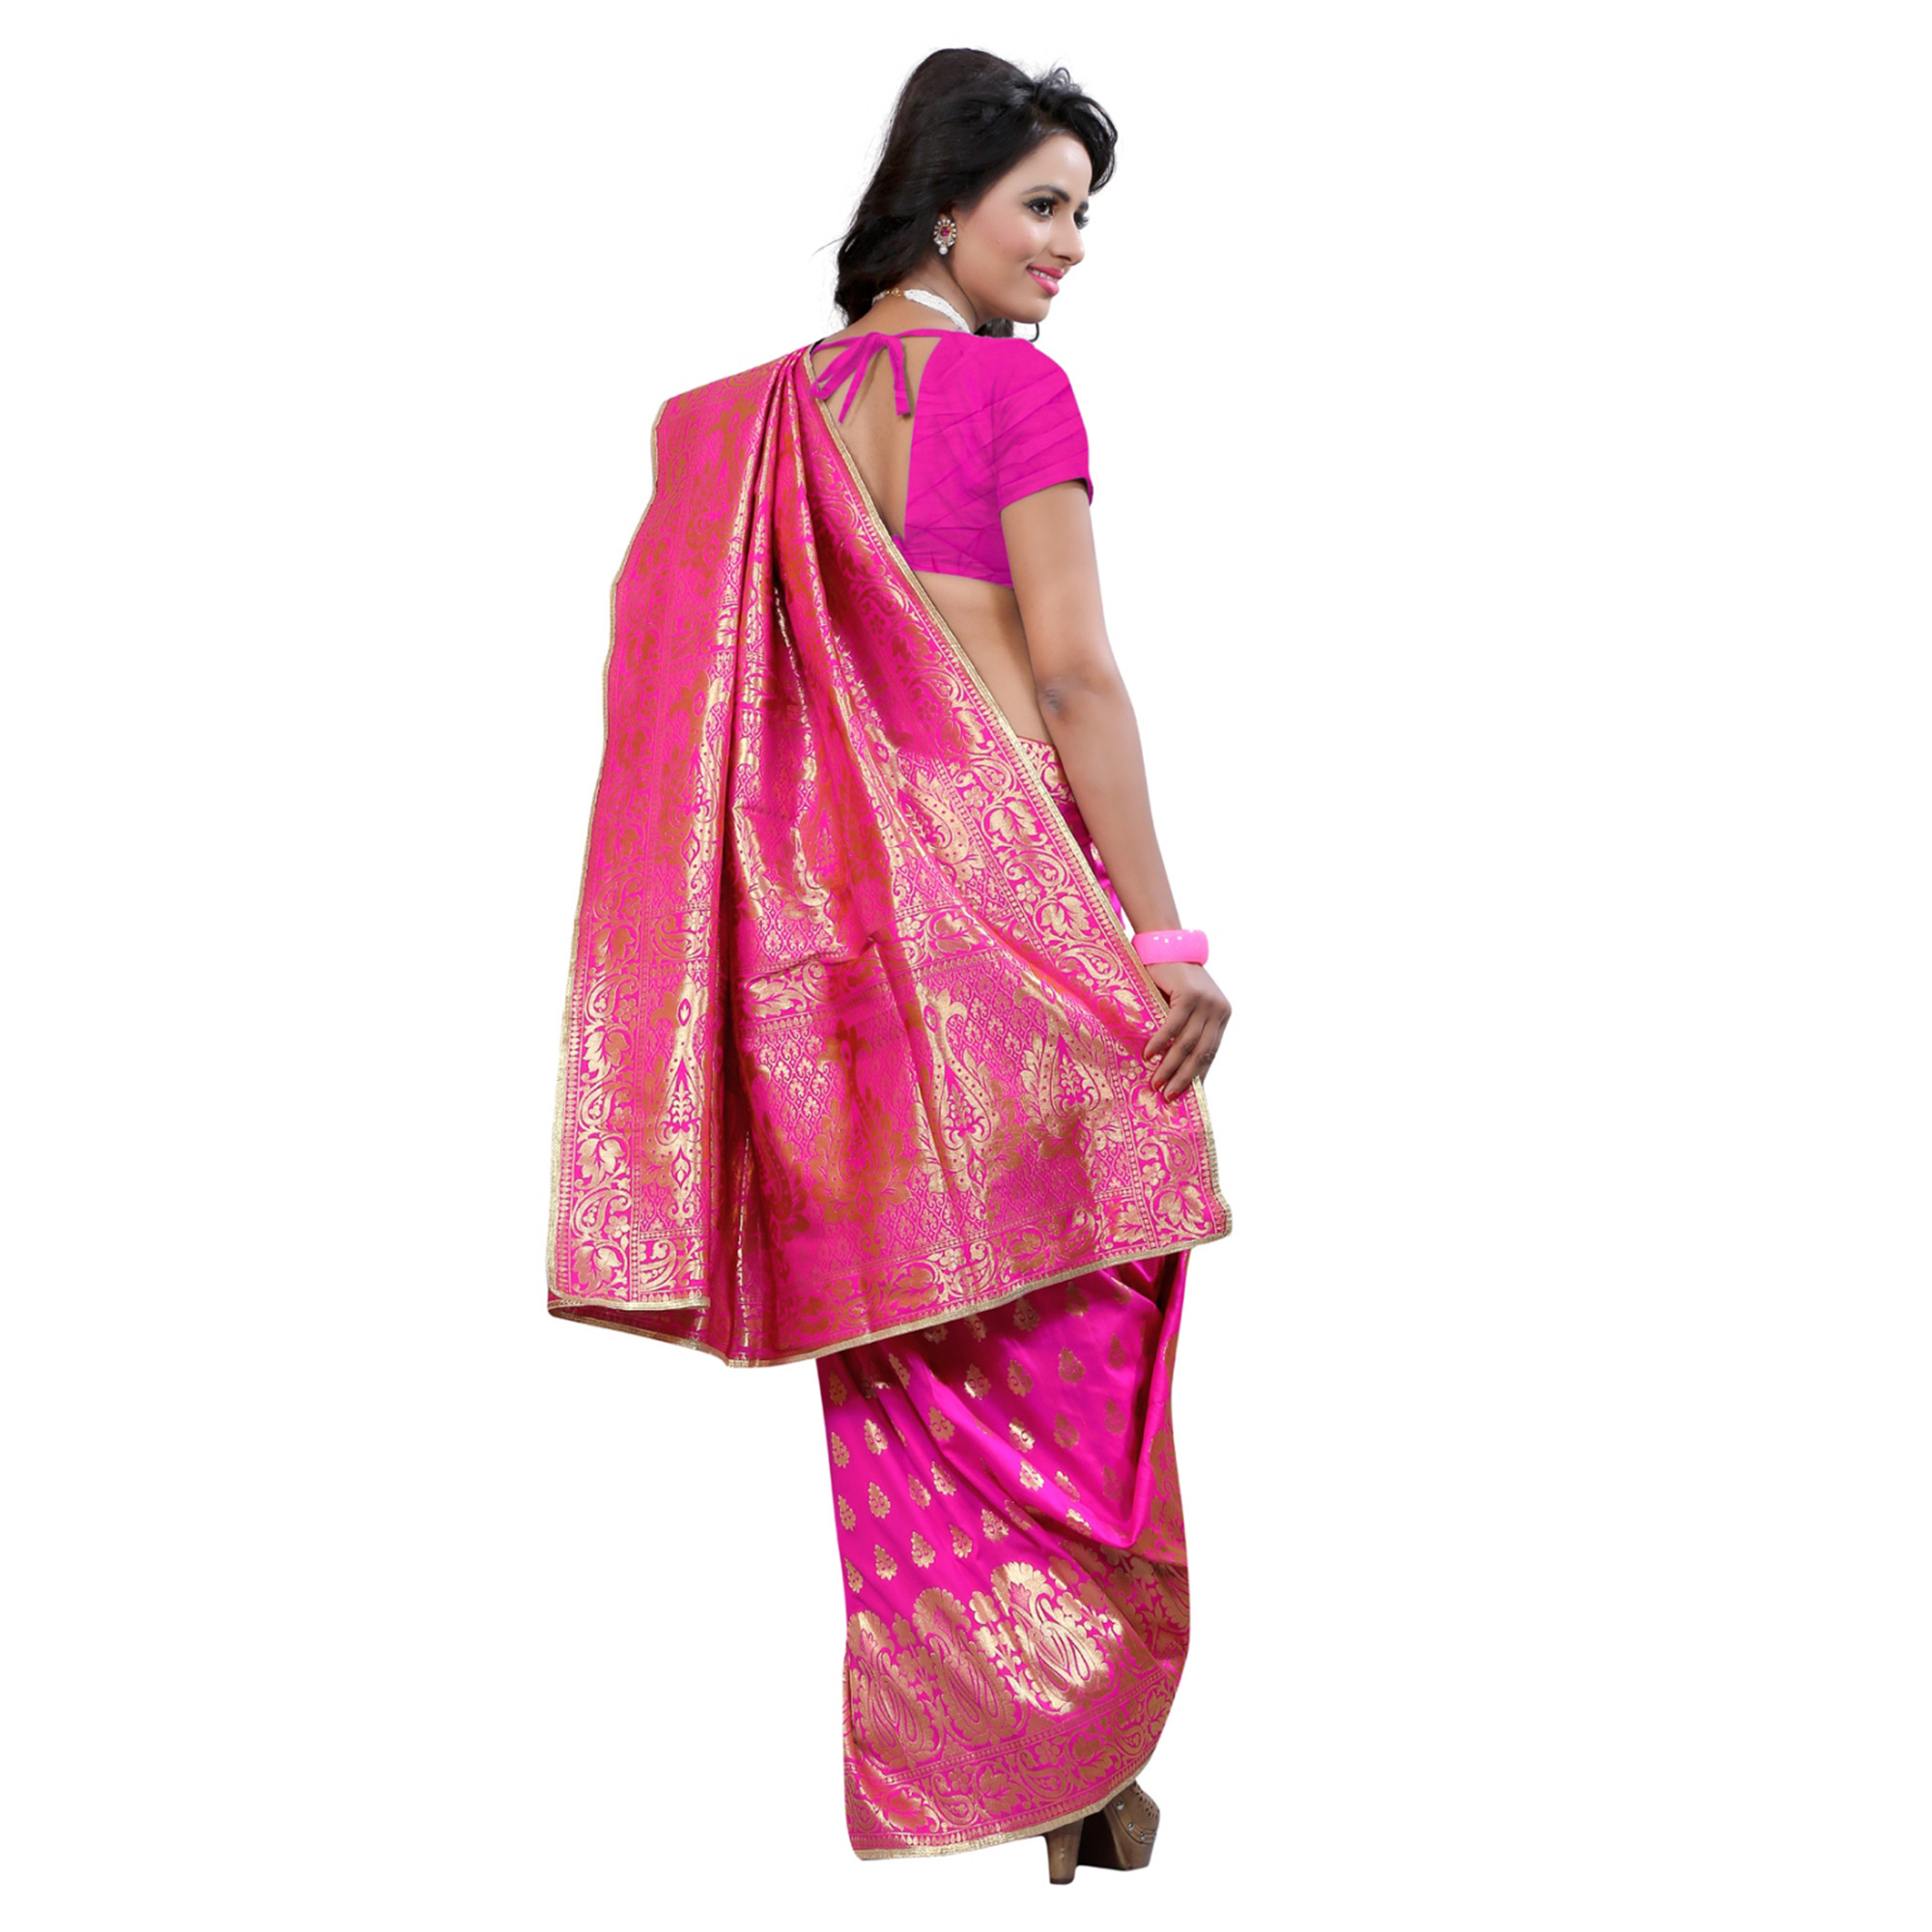 Classy Pink Colored Festive Wear Banarasi Silk Saree